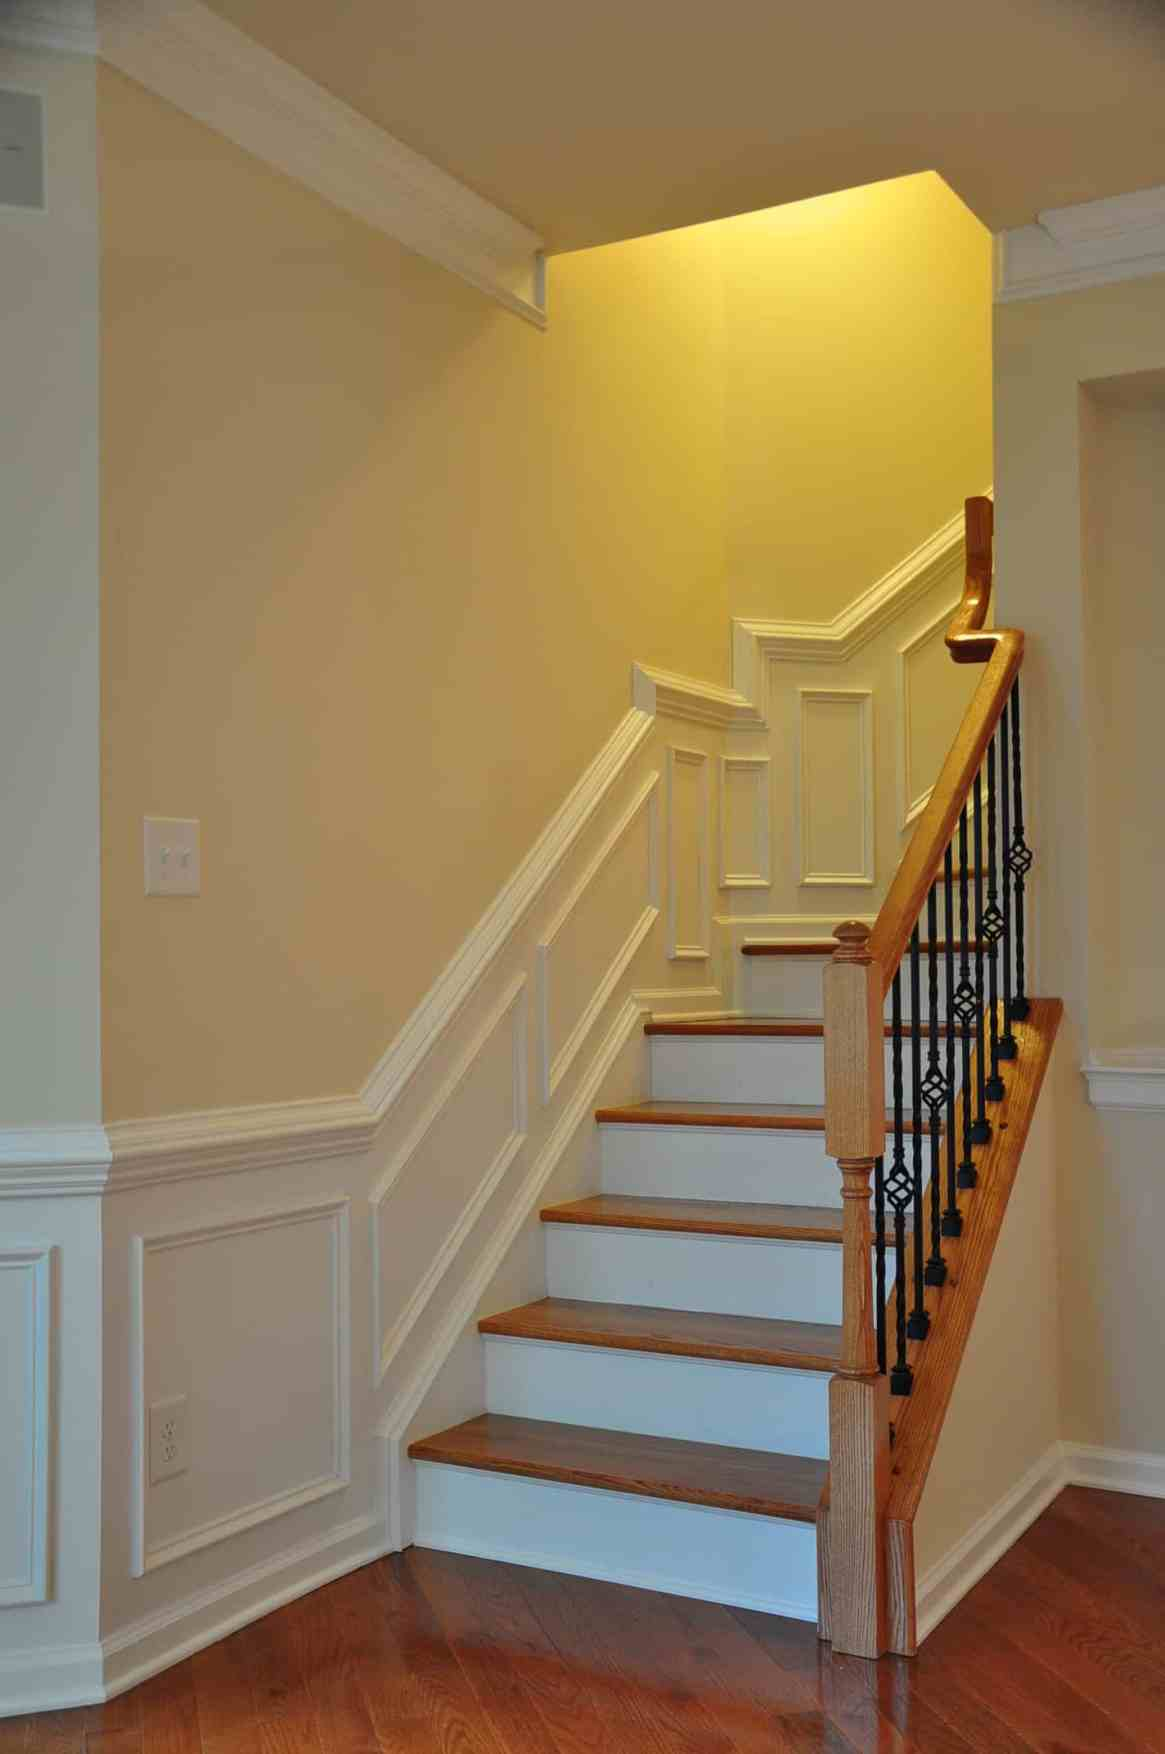 Carpenters install wainscoting in Richmond Va